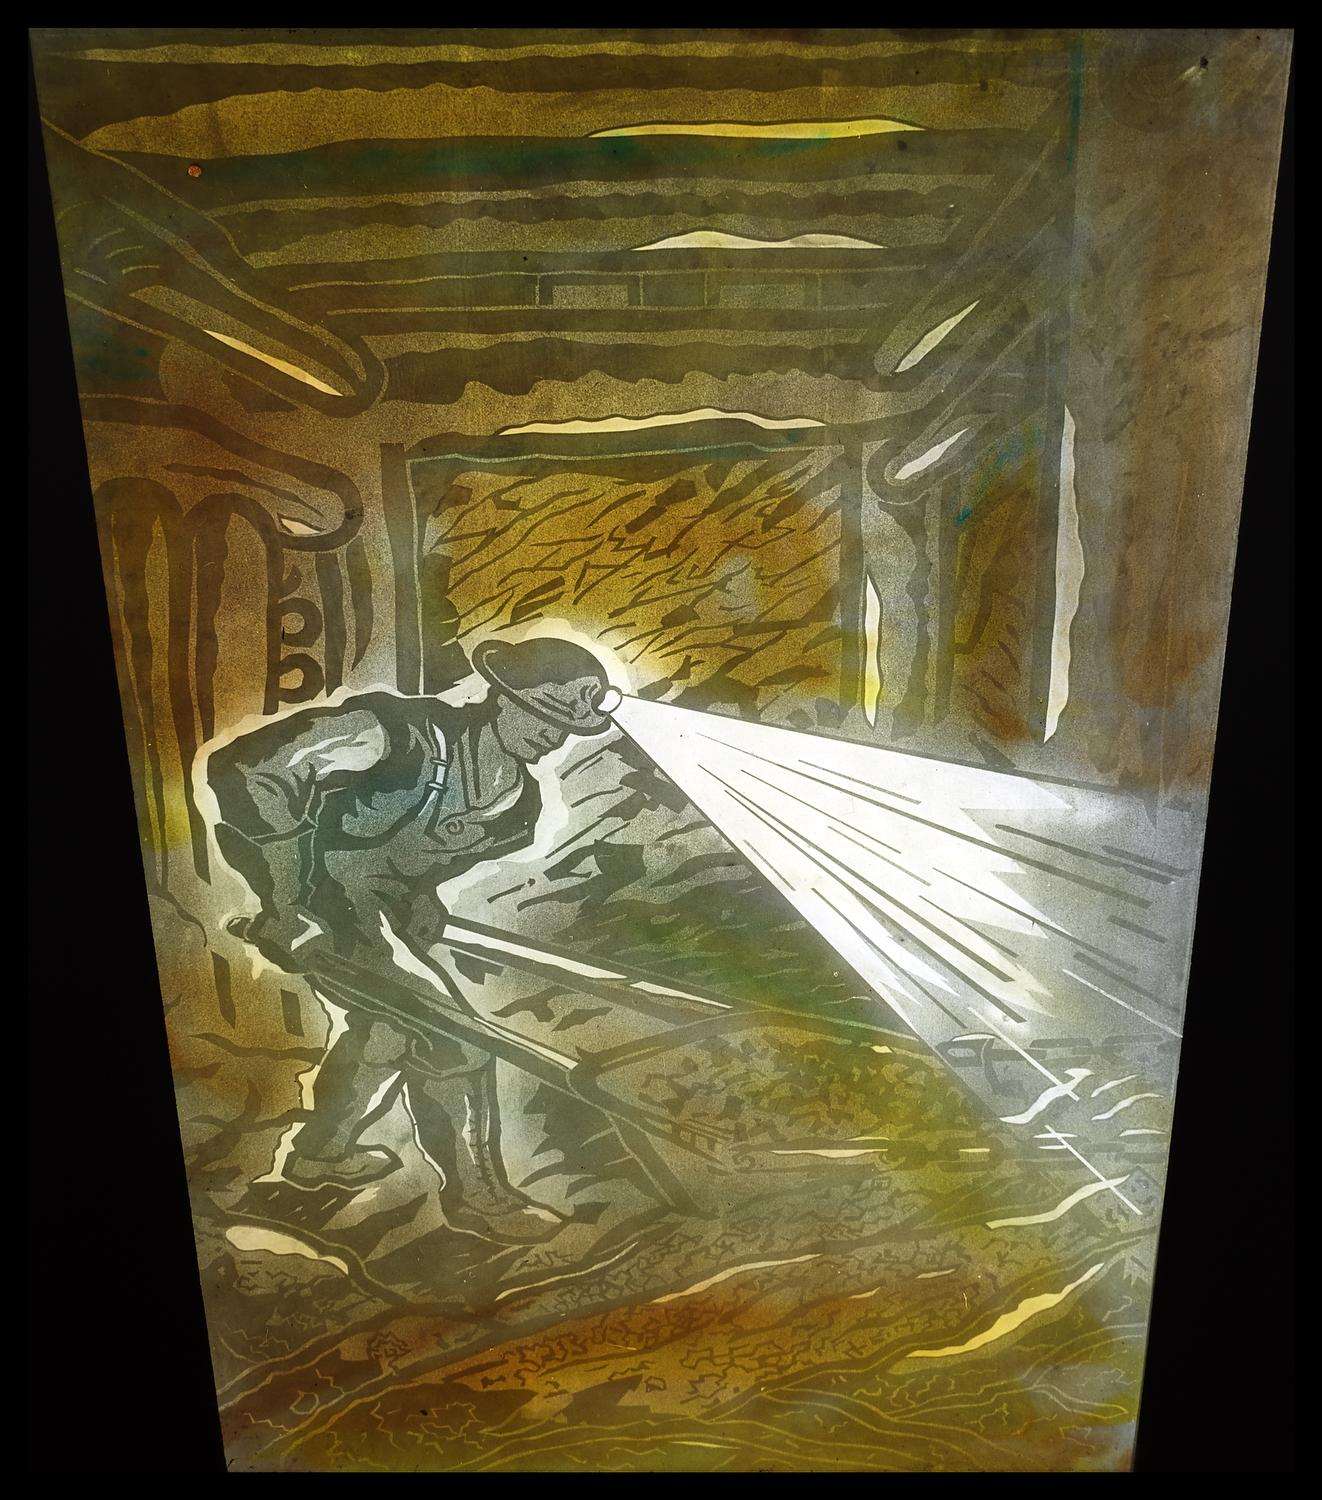 [A mural representing industry and industrialization. This picture depicts a coal miner working in a mine shaft.]